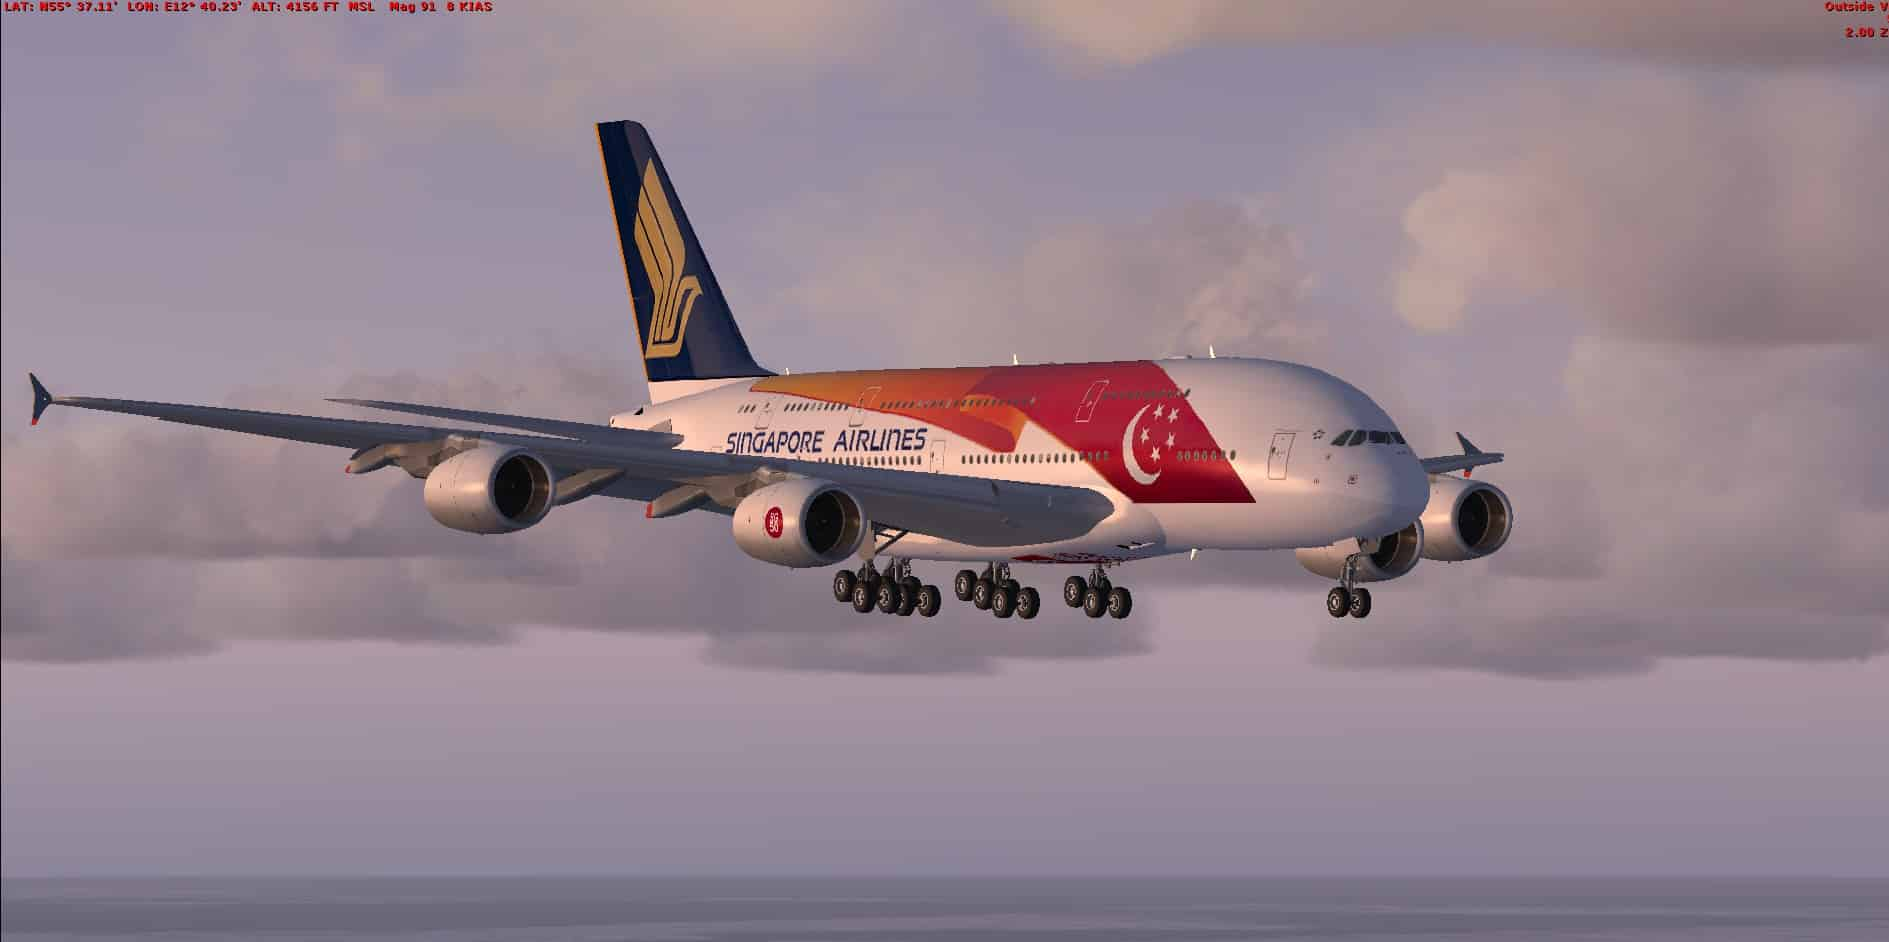 FSX/P3D Airbus A380 Singapore Airlines With VC And Passenger